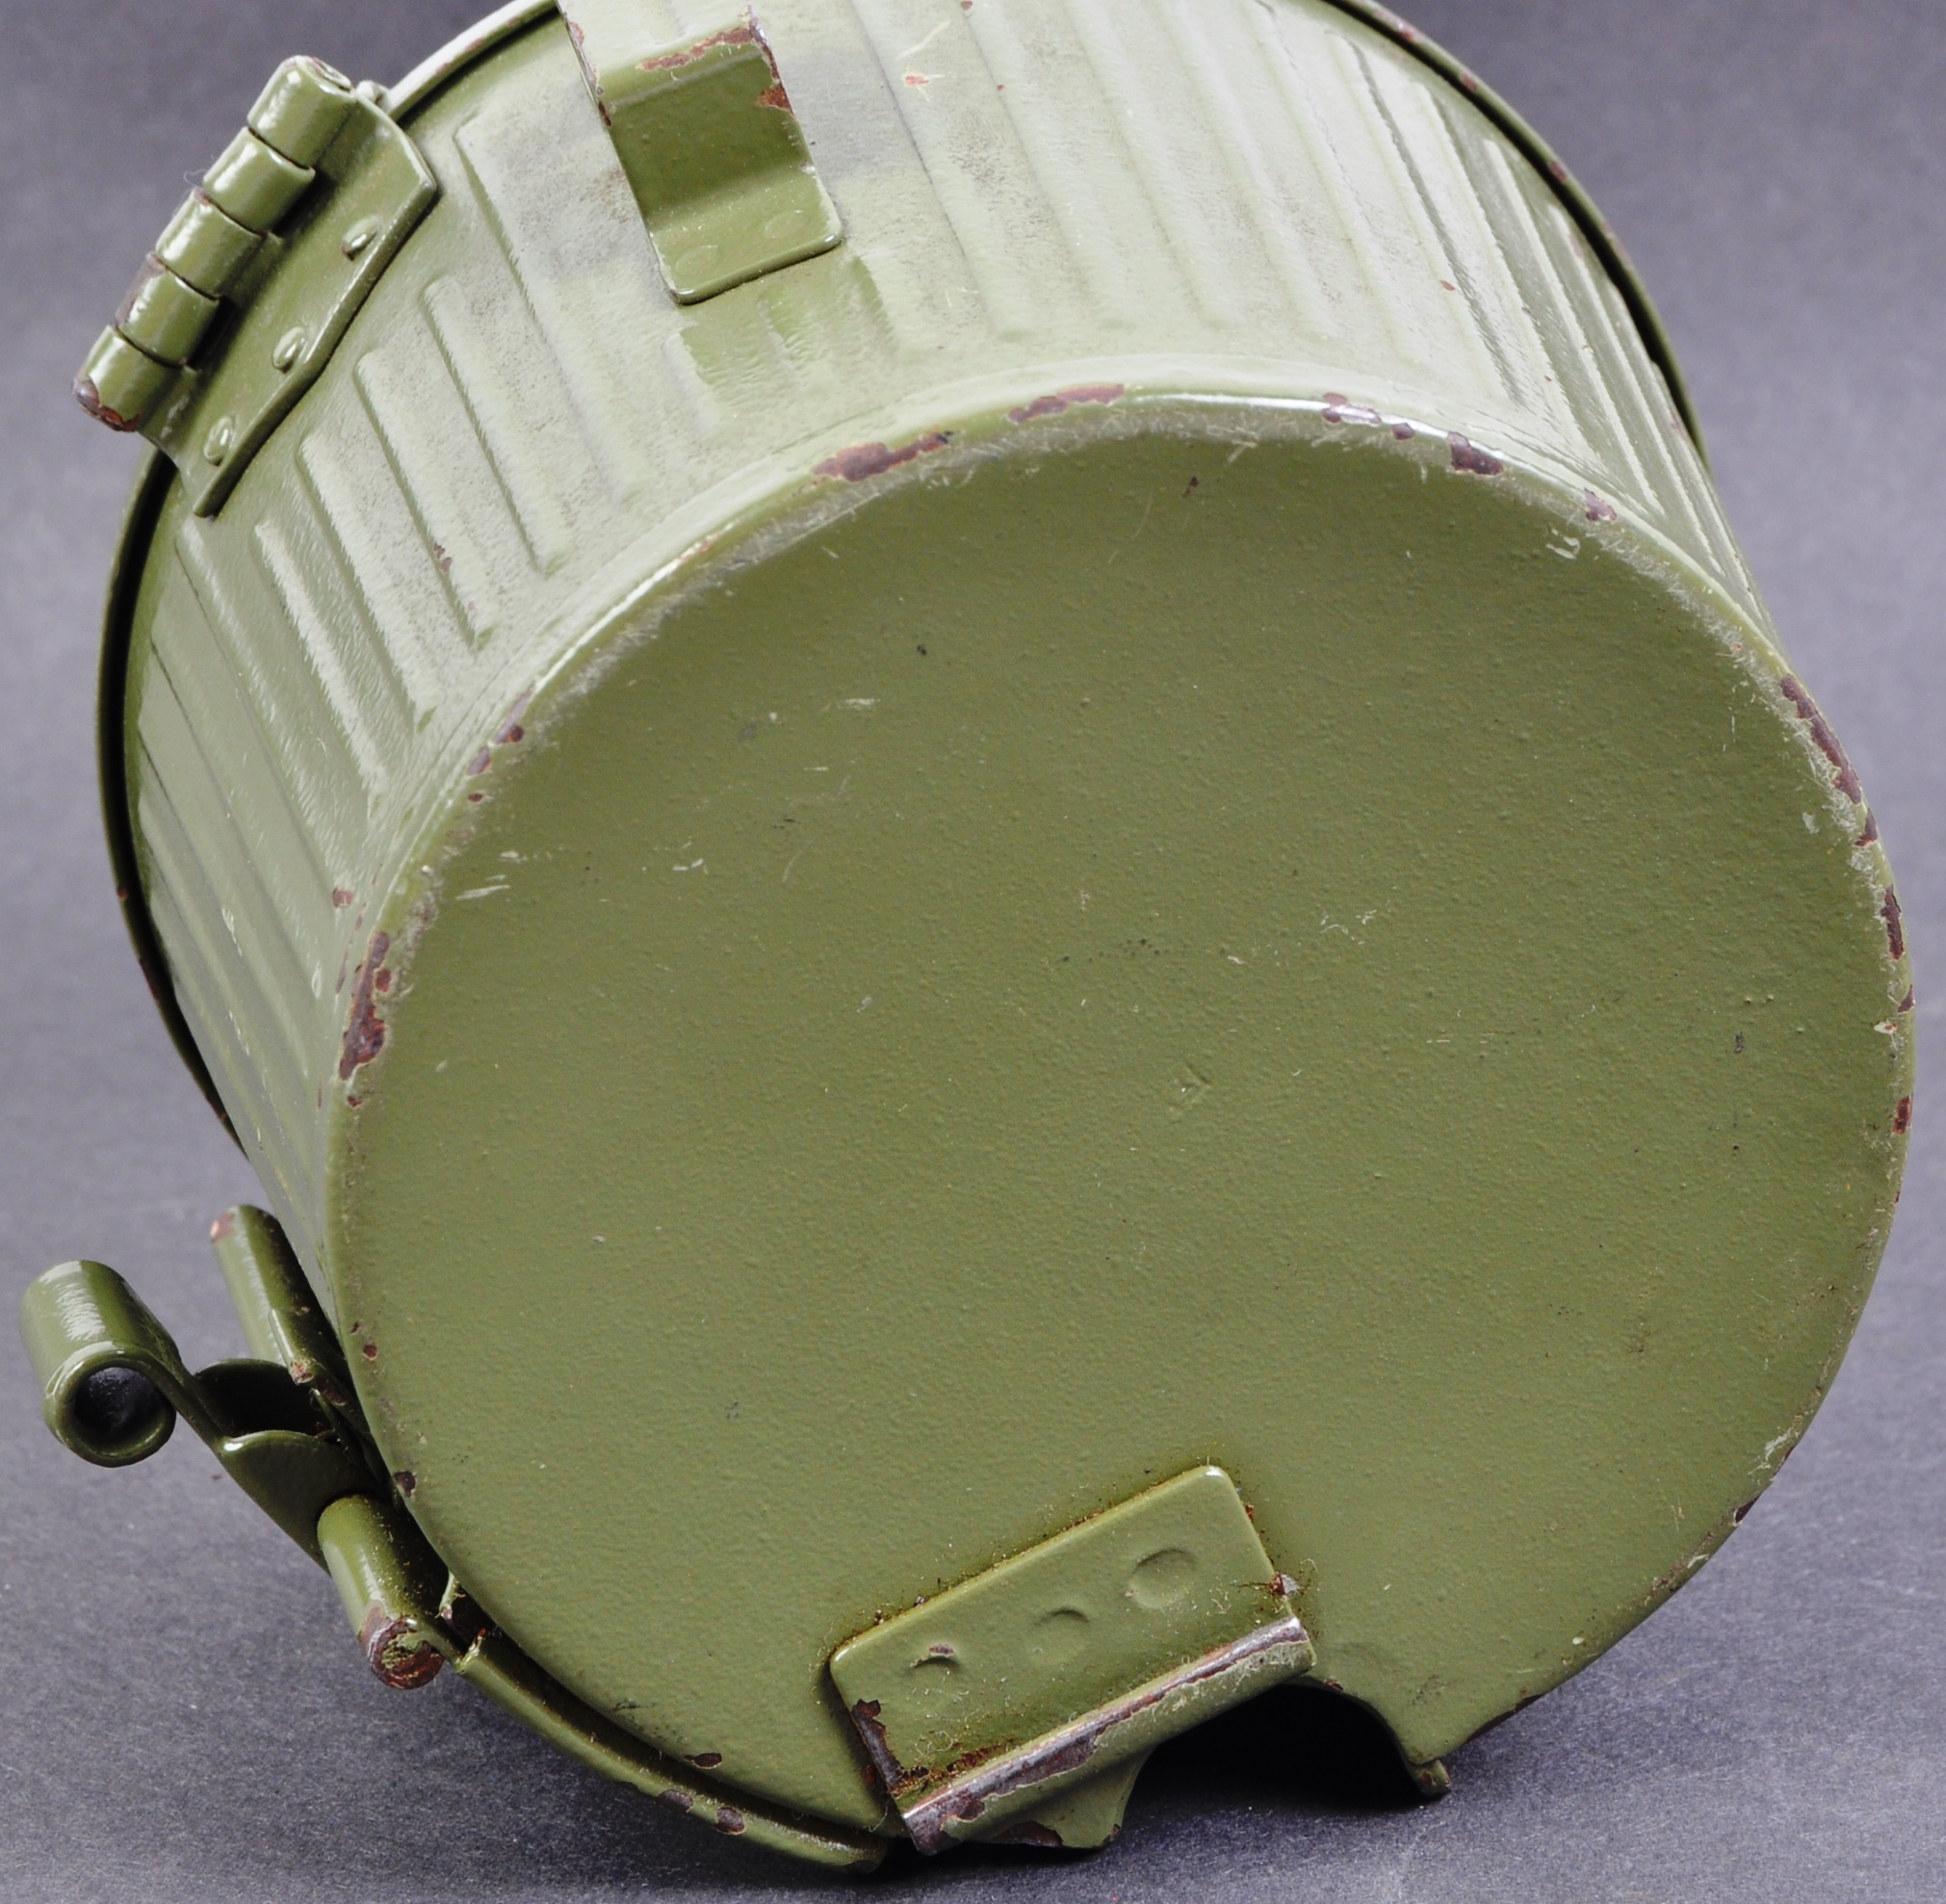 TWO WWII SECOND WORLD WAR TYPE GERMAN REPLICA ITEMS - Image 8 of 9